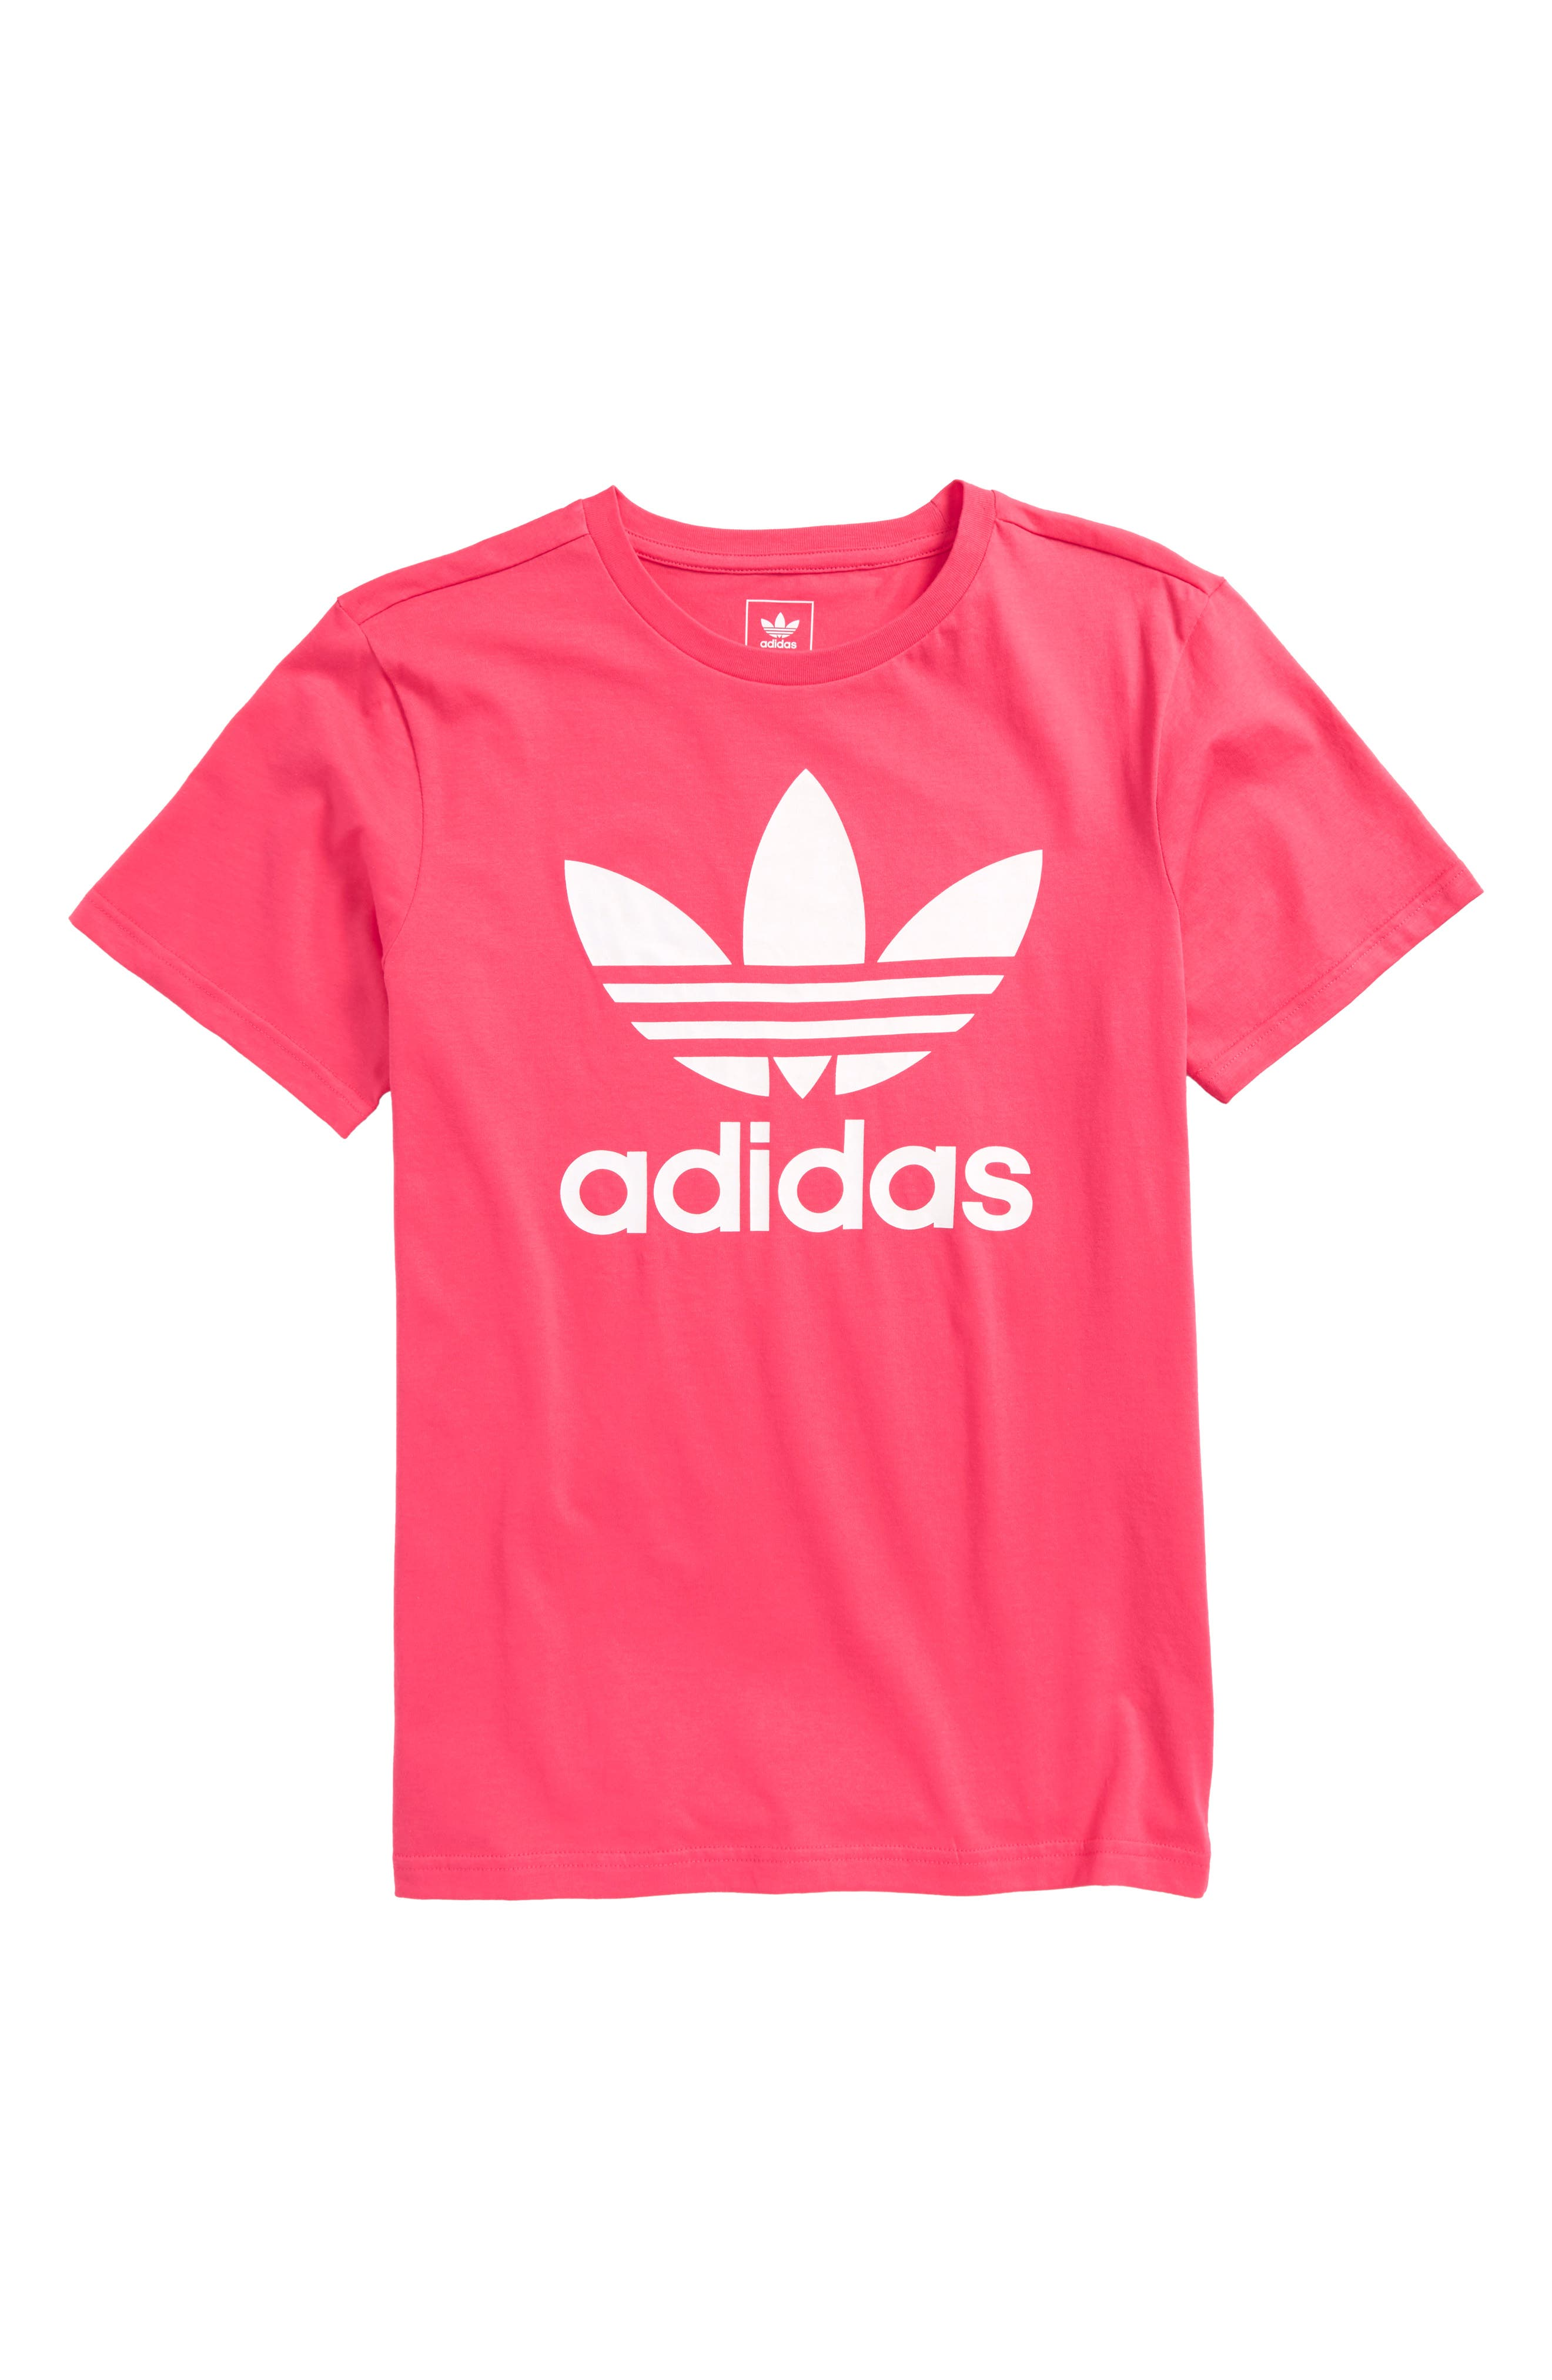 adidas Trefoil Tee,                         Main,                         color, Real Pink / White